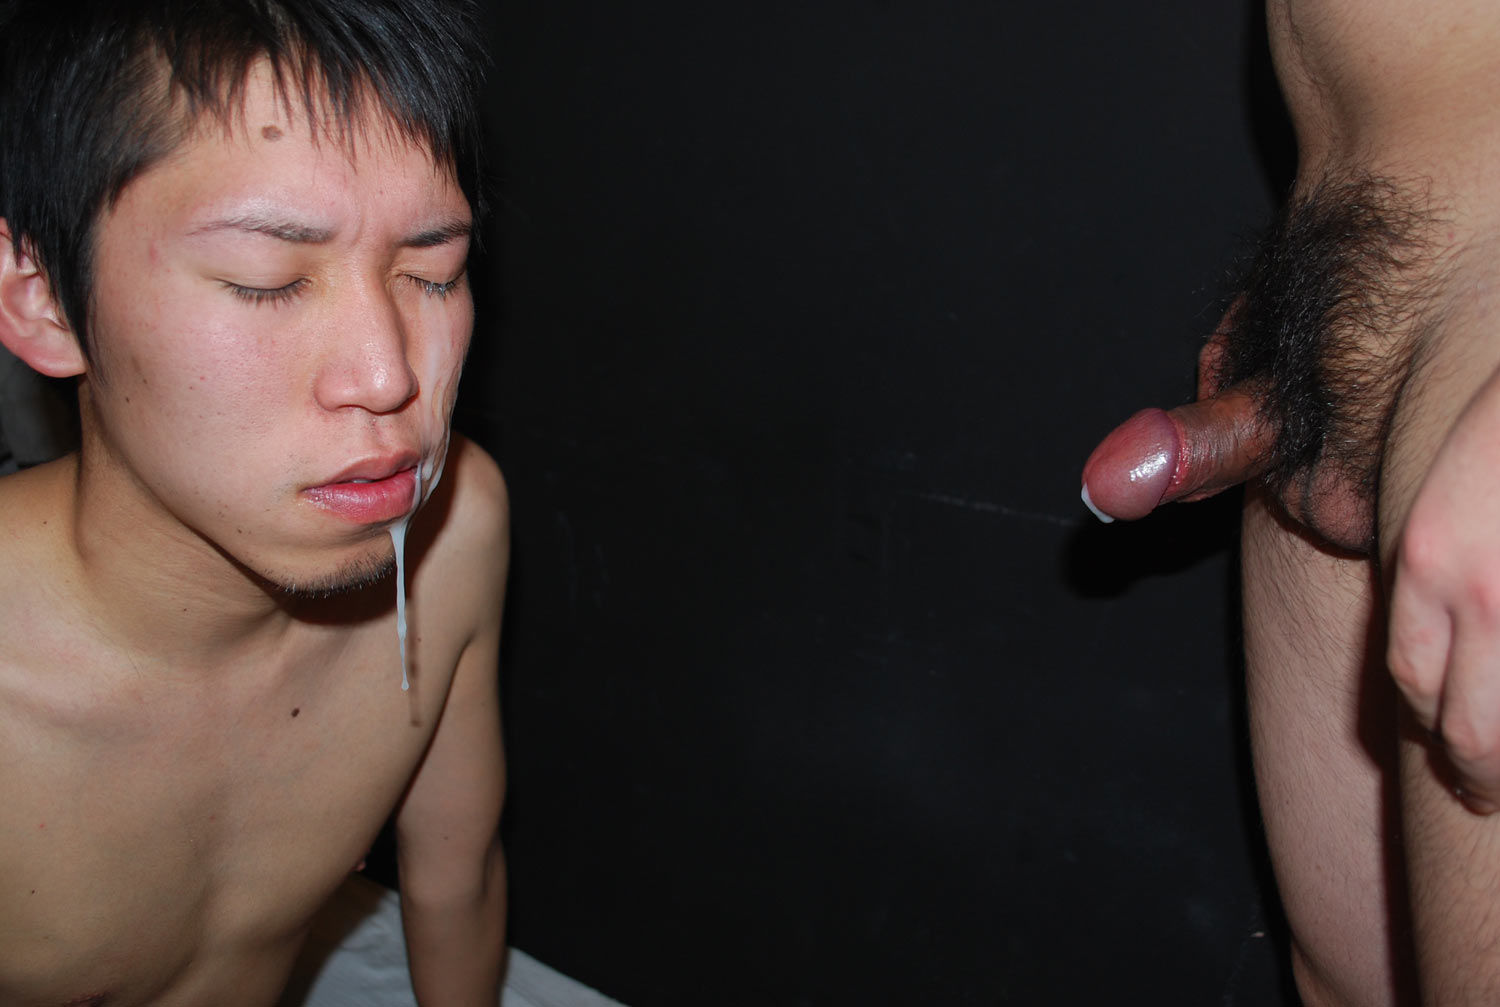 JapanBoyz-Keisuke-and-Shinji-Big-Cock-Asian-Guys-Give-Each-Other-Cum-Facial-Amateur-Gay-Porn-19 Big Cock Asian Boys Give Each Other HUGE Cum Facials